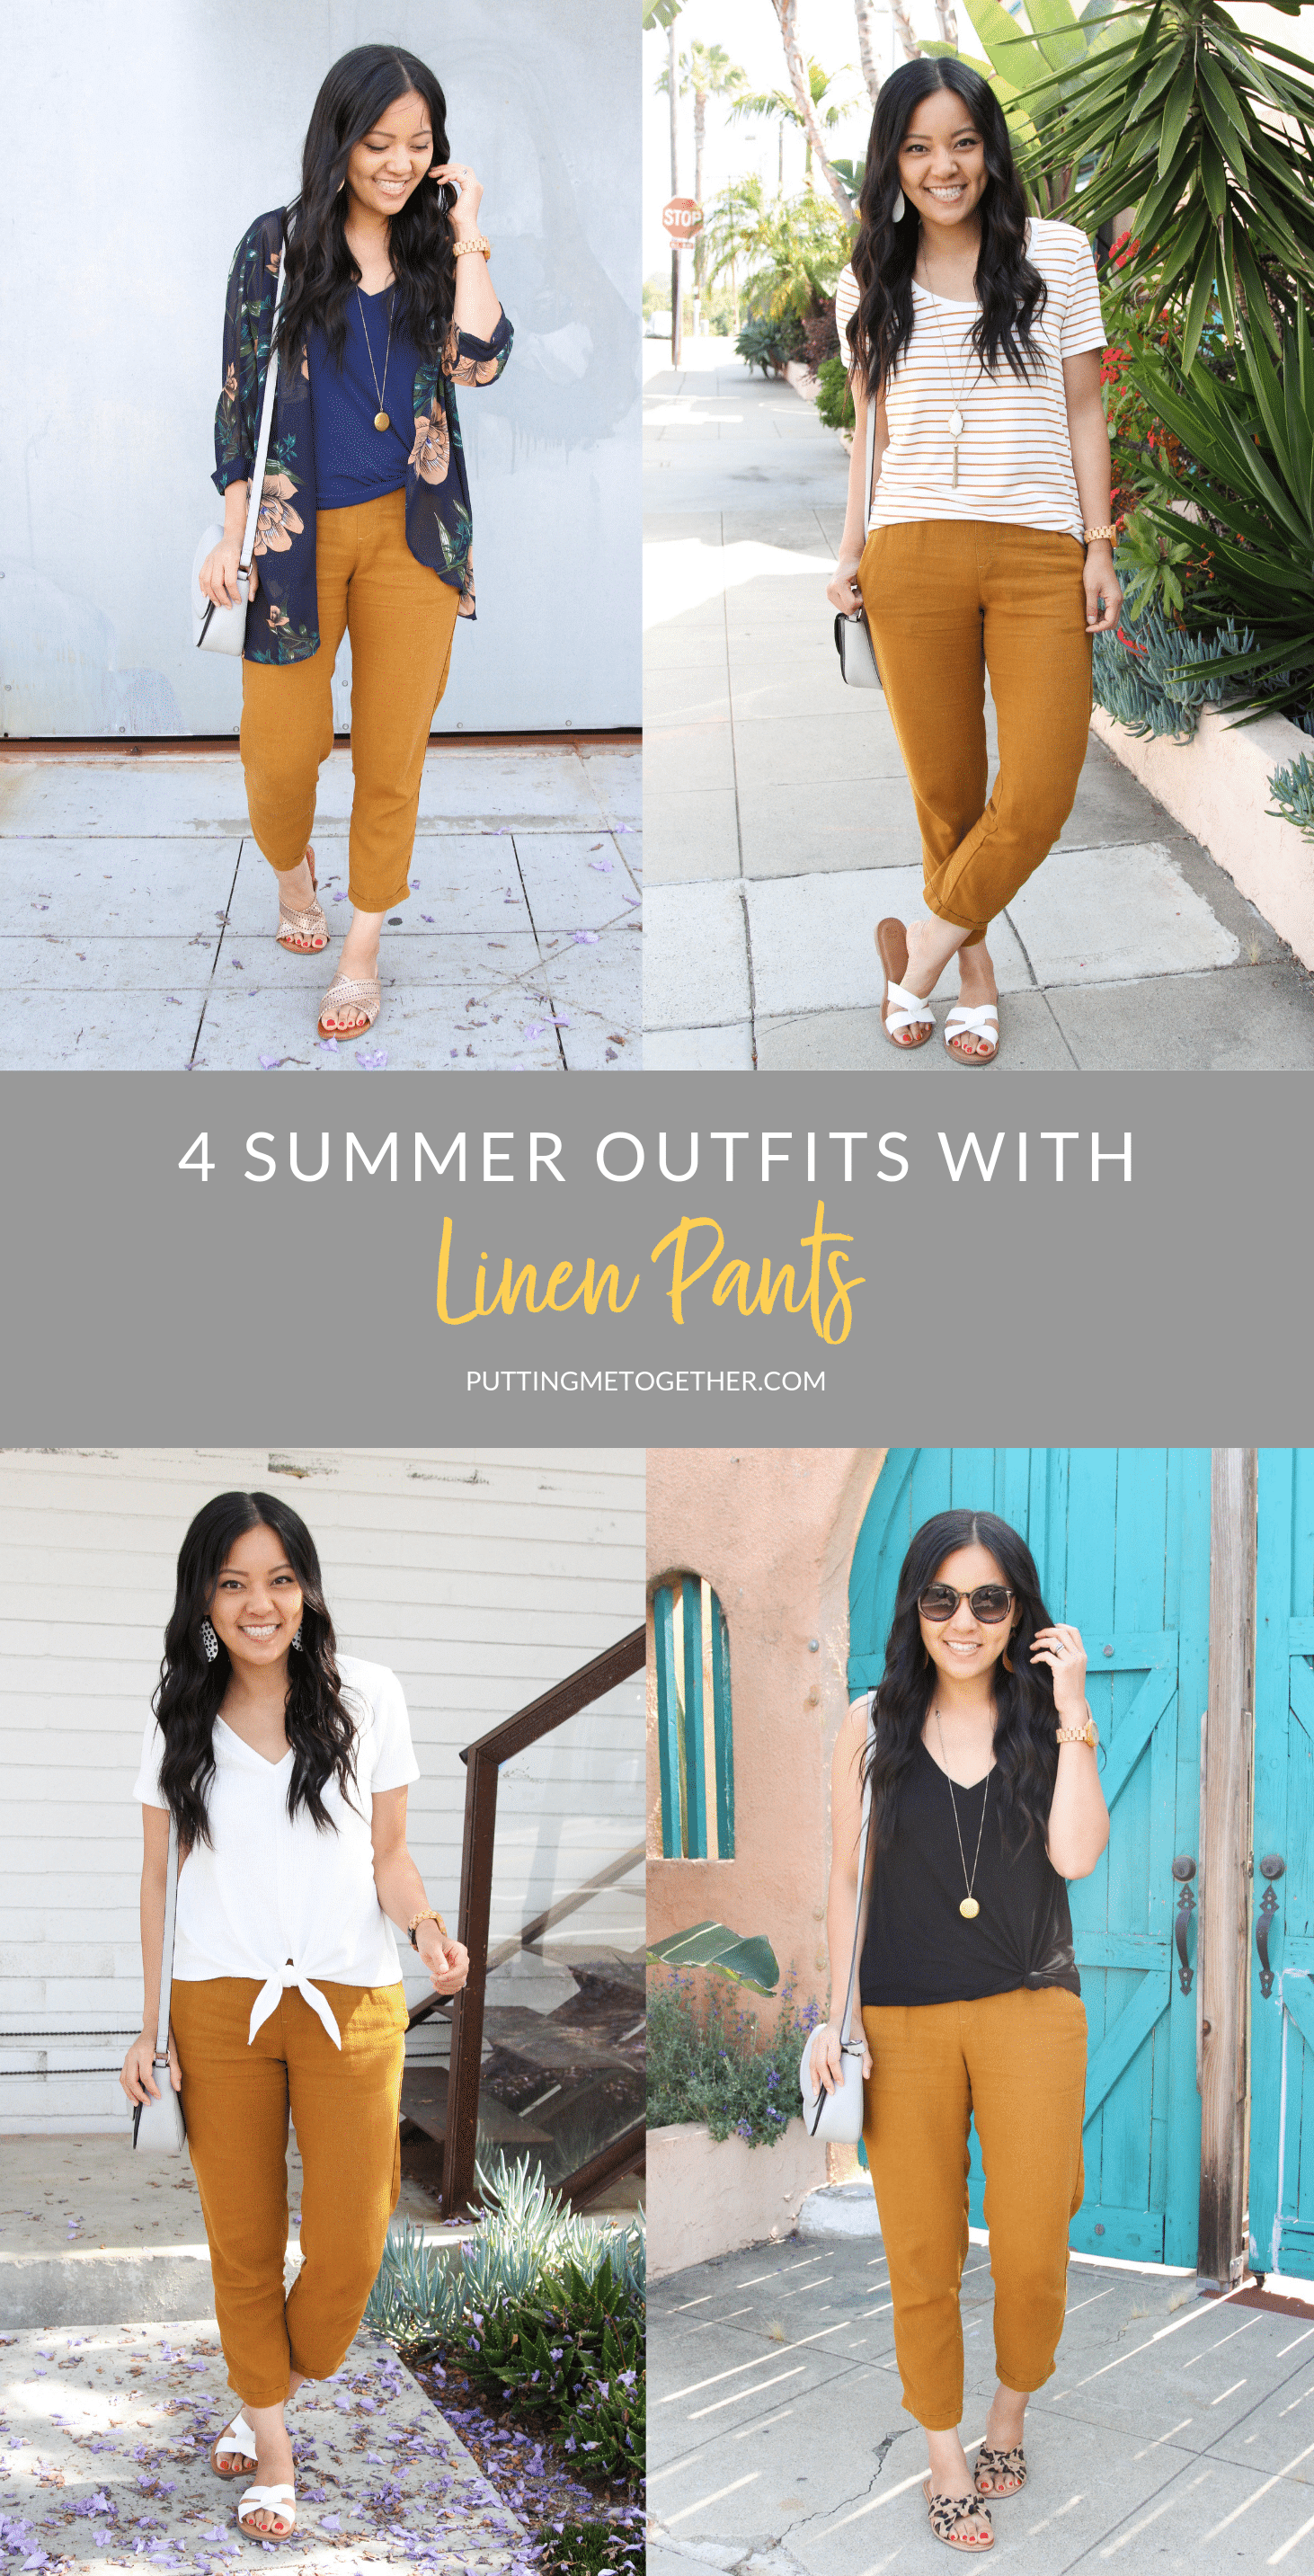 4 Summer Outfits with linen Pants